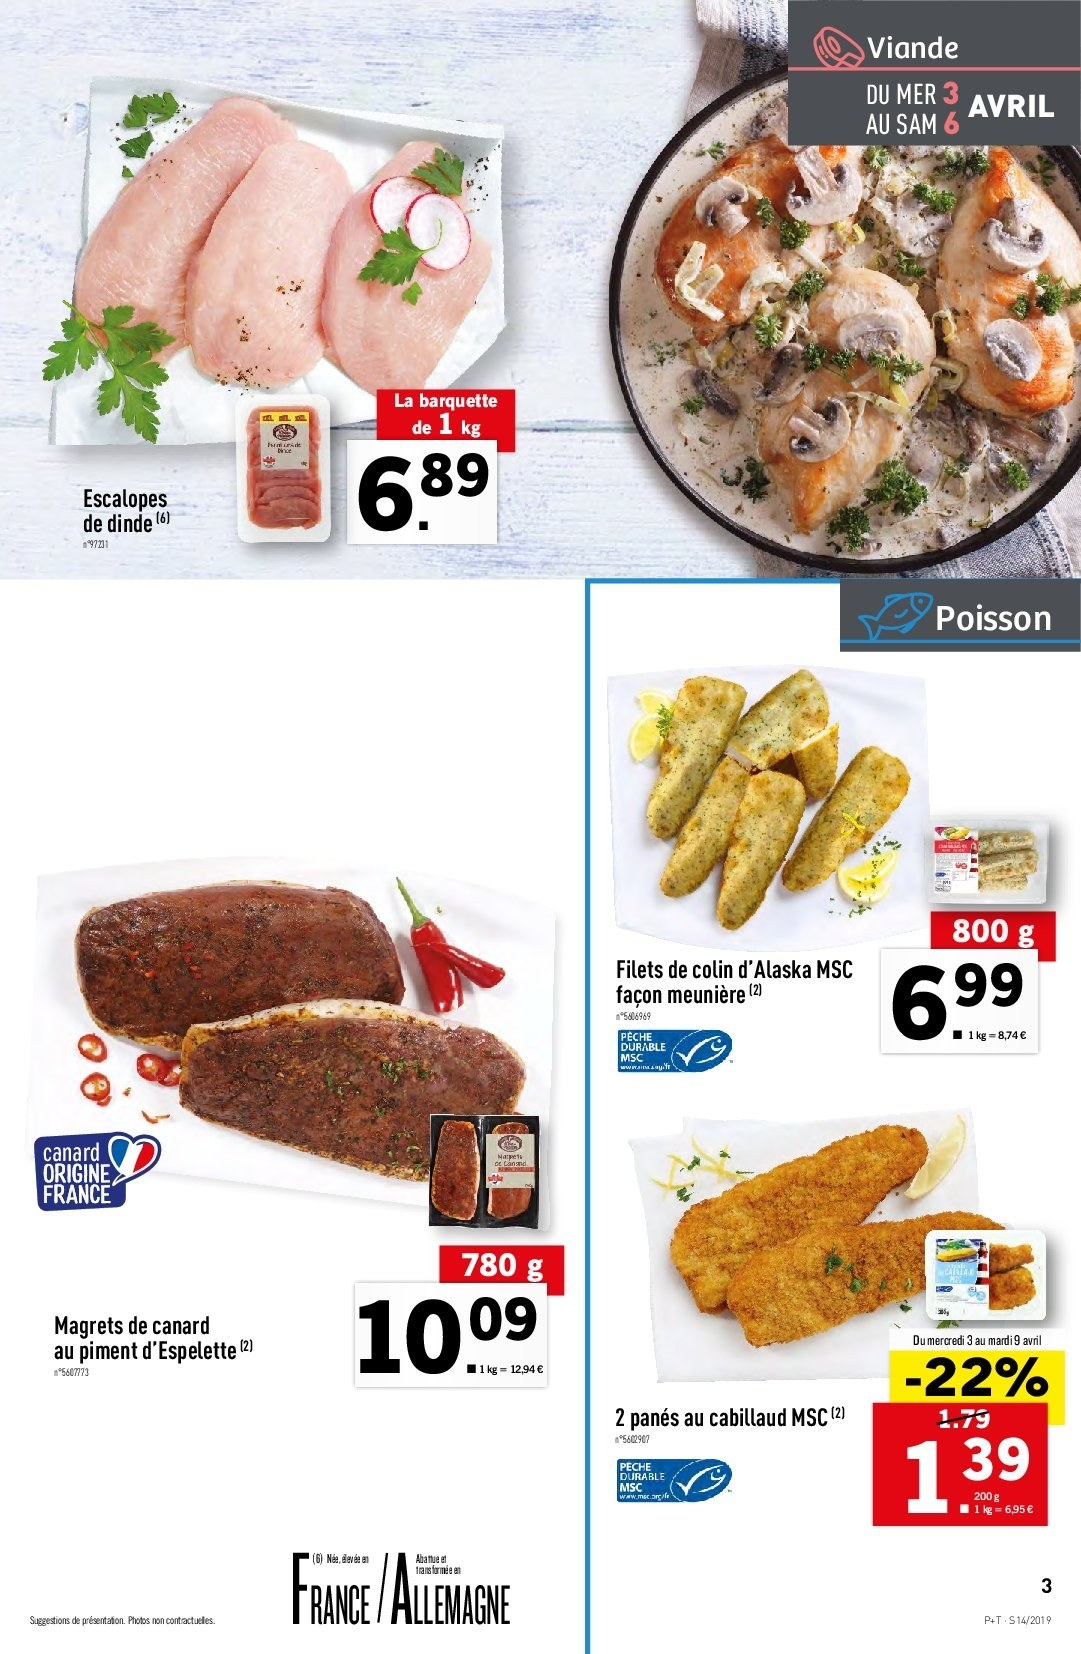 Catalogue Lidl - 03.04.2019 - 09.04.2019. Page 3.